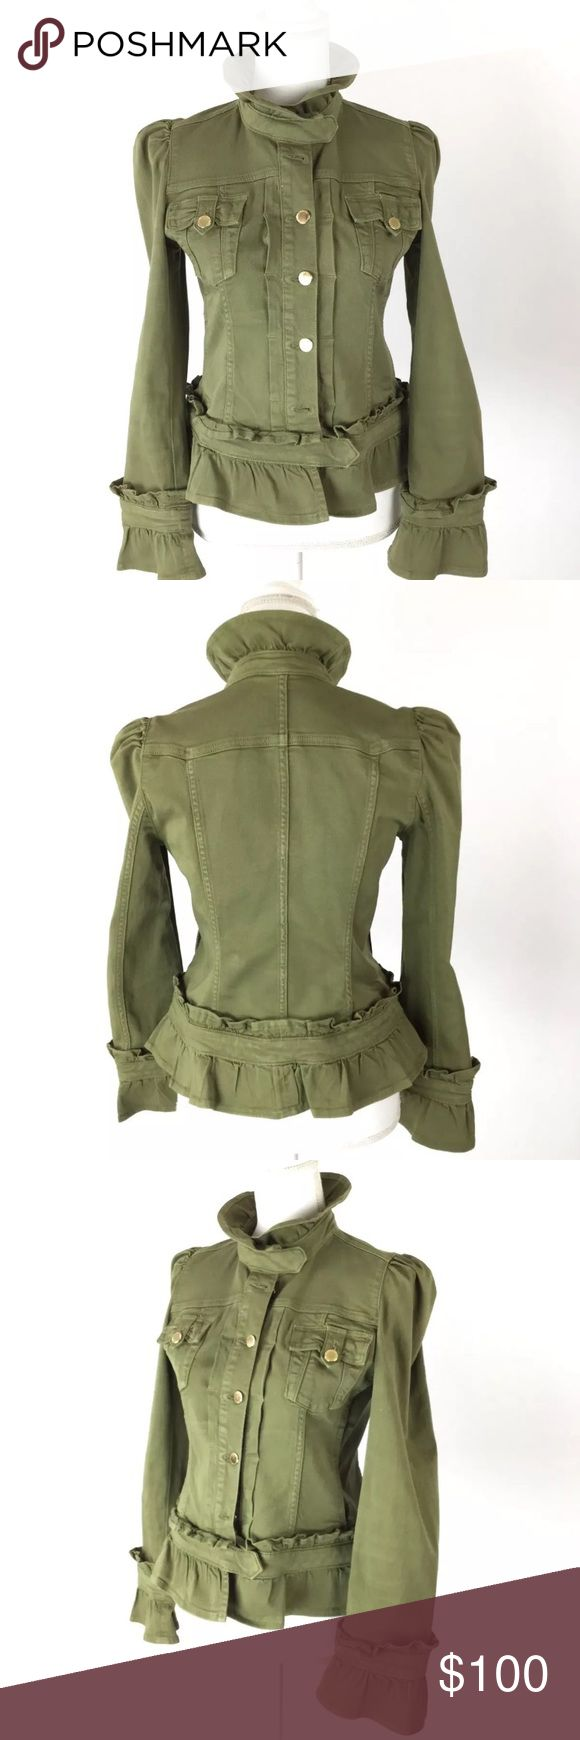 "R.E.D. Valentino Designer Ruffle Military Jacket R.E.D. Valentino Designer Ruffle Military Jacket Army Green  Excellent Preowned Condition   ***Please know the Size tag is missing so please check the measurements of a similar item you own against this item's measurements***  MEASUREMENTS: CHEST (armpit seam to armpit seam) 17"" SHOULDERS (shoulder seam to shoulder seam) 13"" ARM (armpit seam to end of sleeve) 17"" ARM (shoulder seam to end of sleeve) 25"" LENGTH (base of collar to bottom of…"